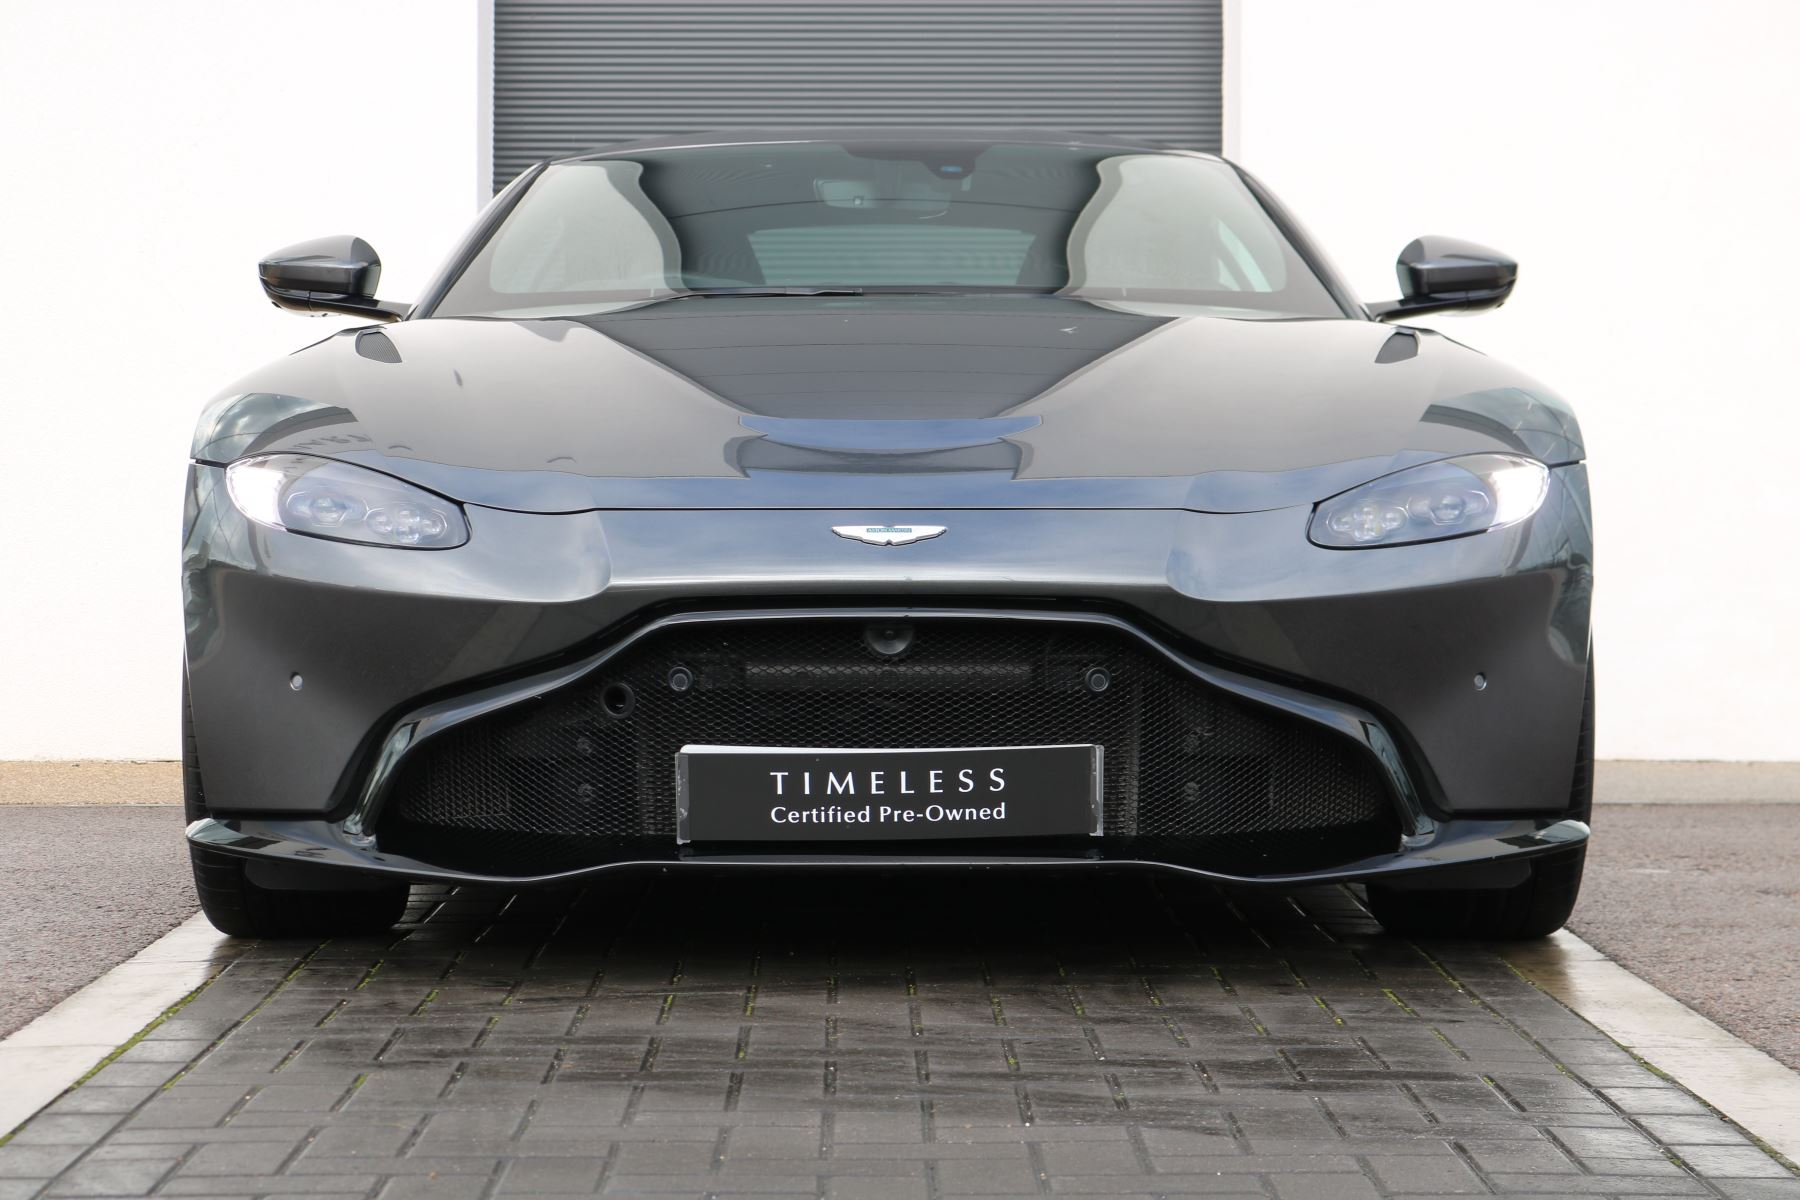 Aston Martin New Vantage 2dr ZF 8 Speed Free Servicing One Owner 4.0 Automatic 3 door Coupe